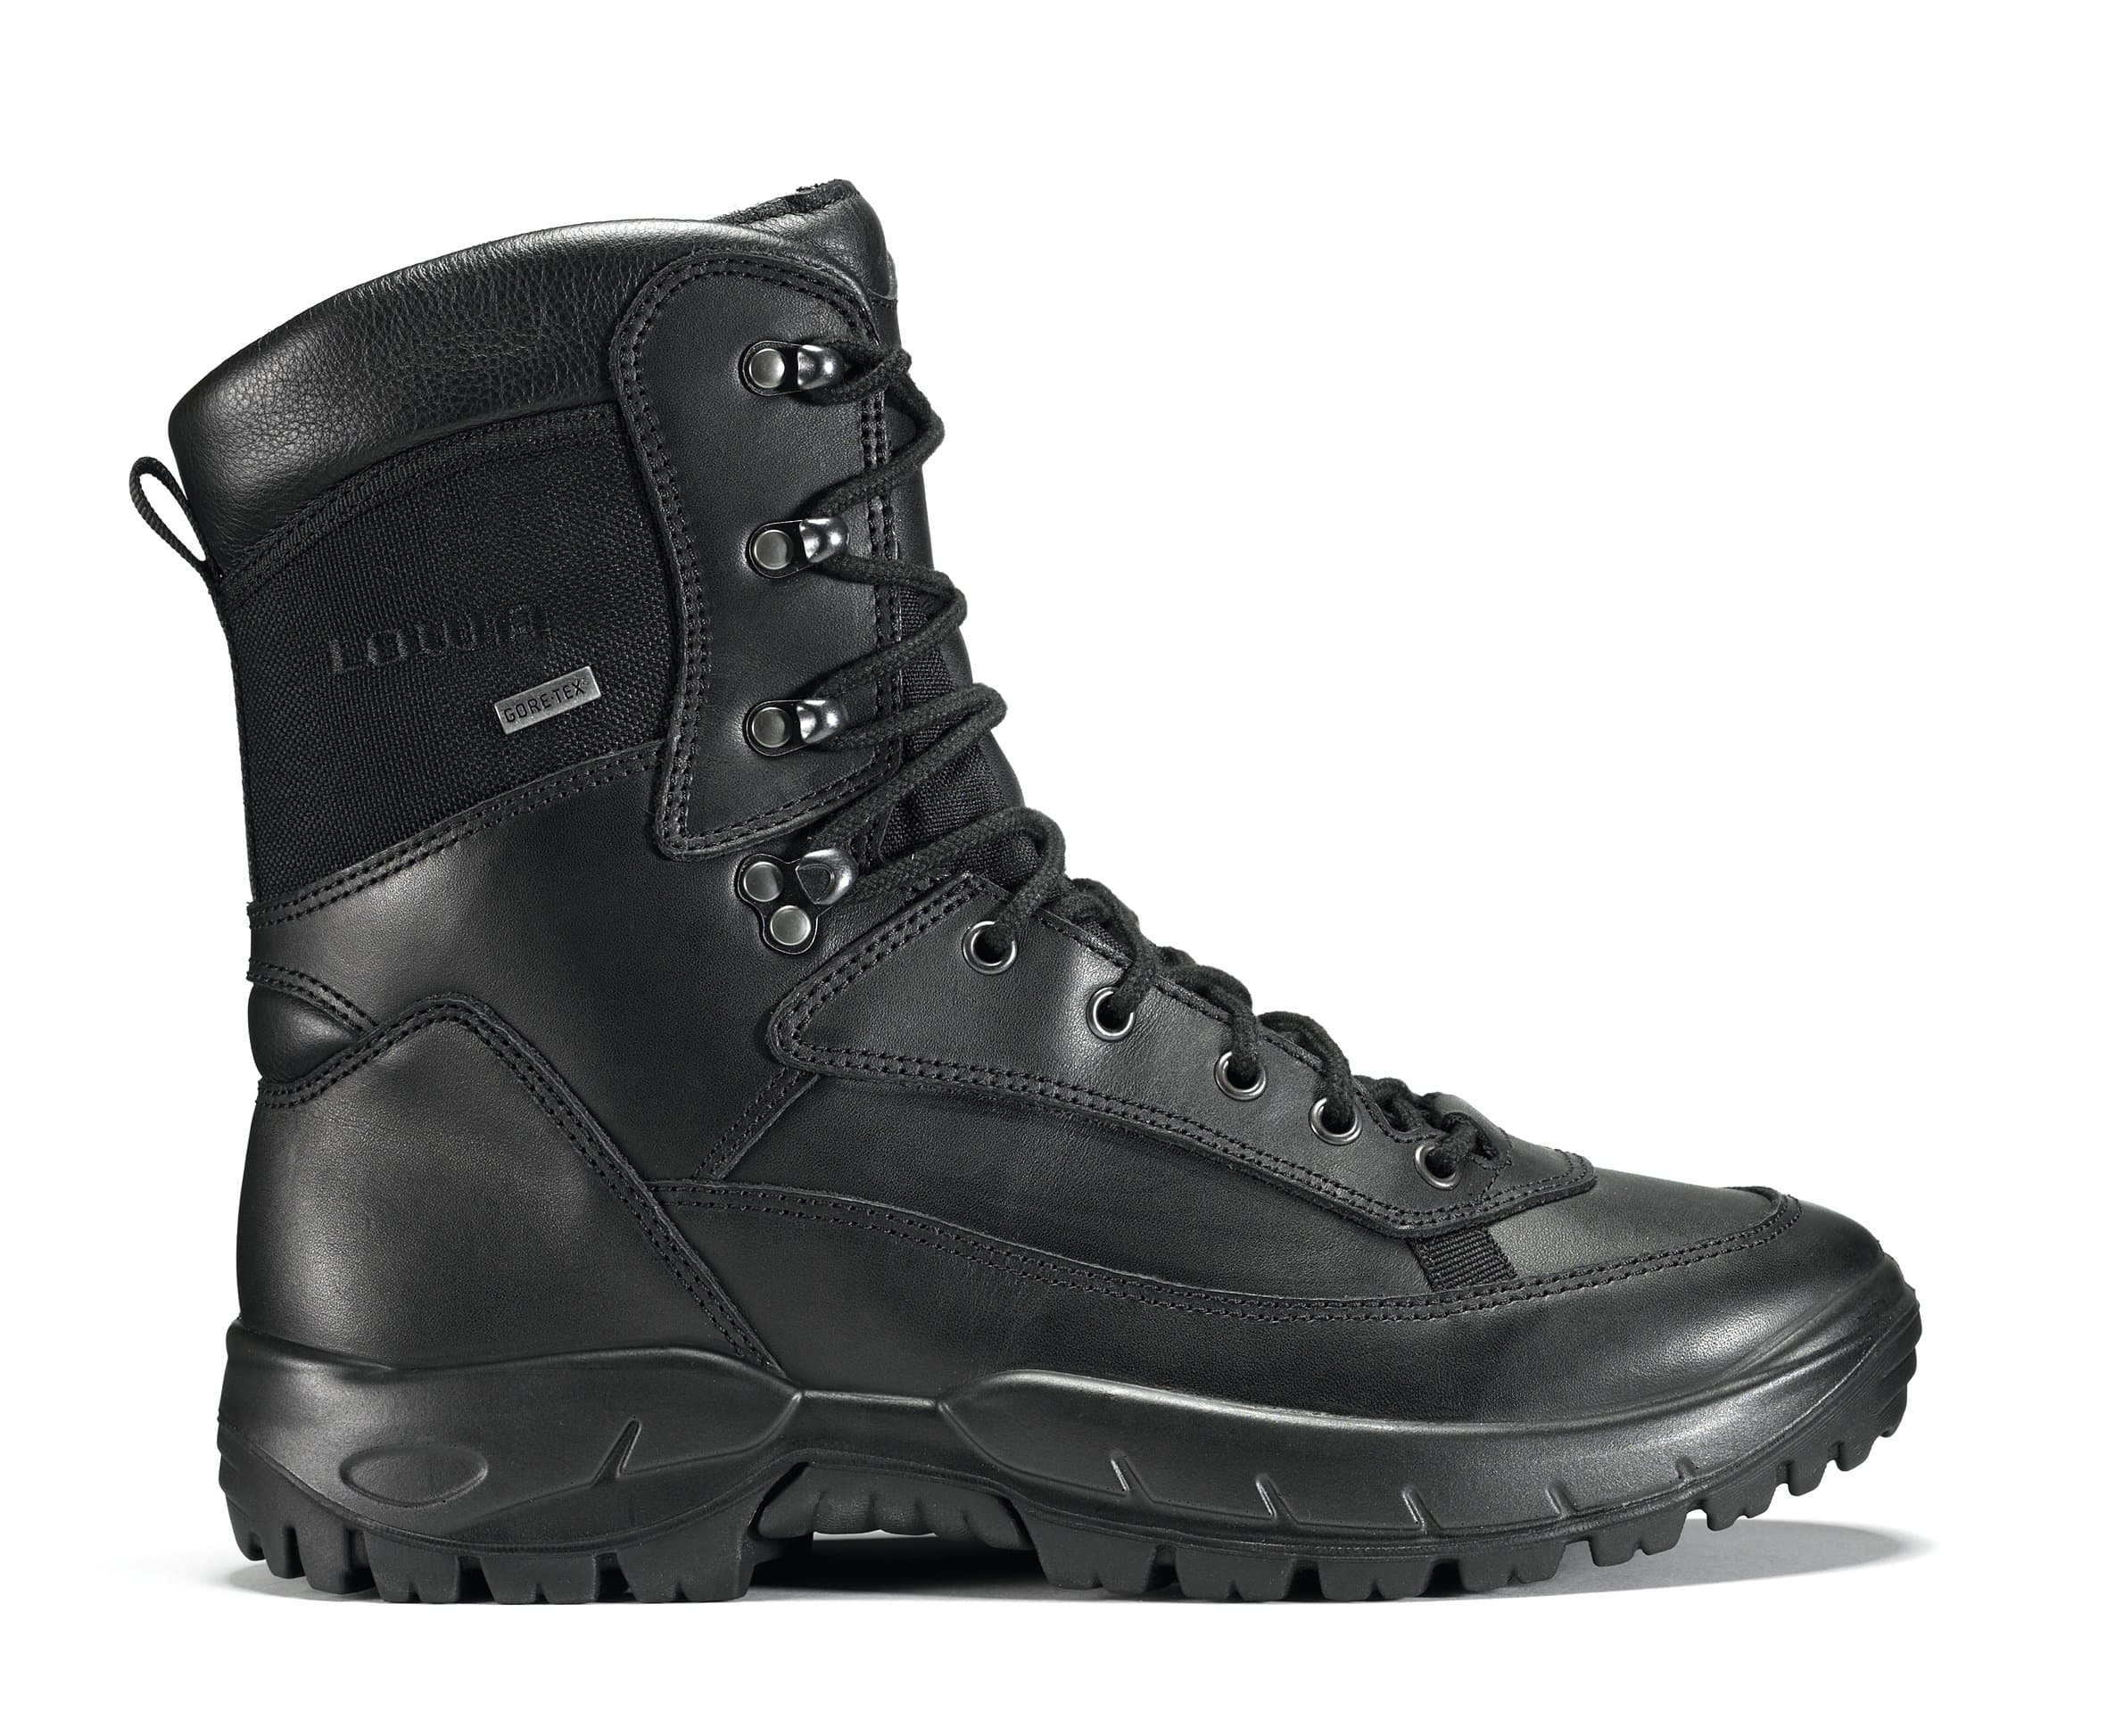 Lowa Recon GTX TF Chaussures de travail